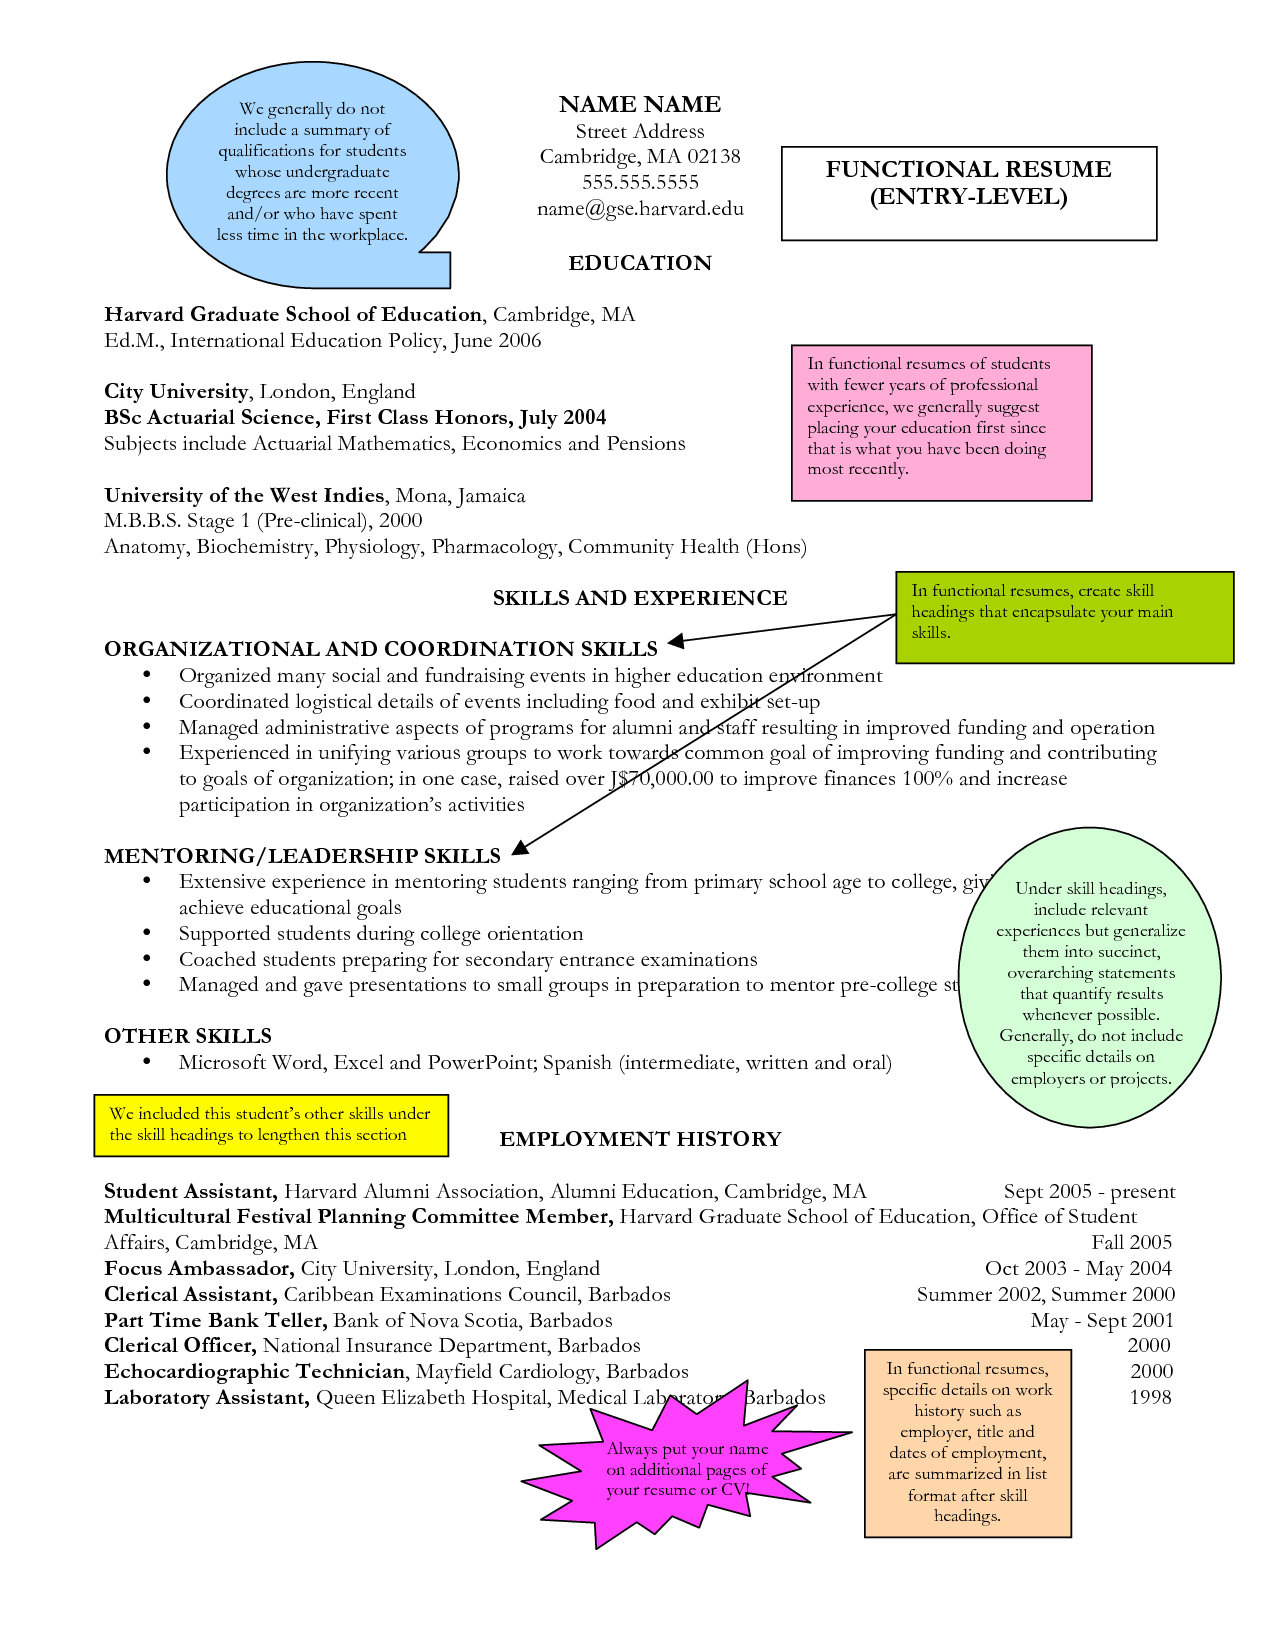 Functional Resume Samples Entry Level Functional Resume  Google Search  Administrative